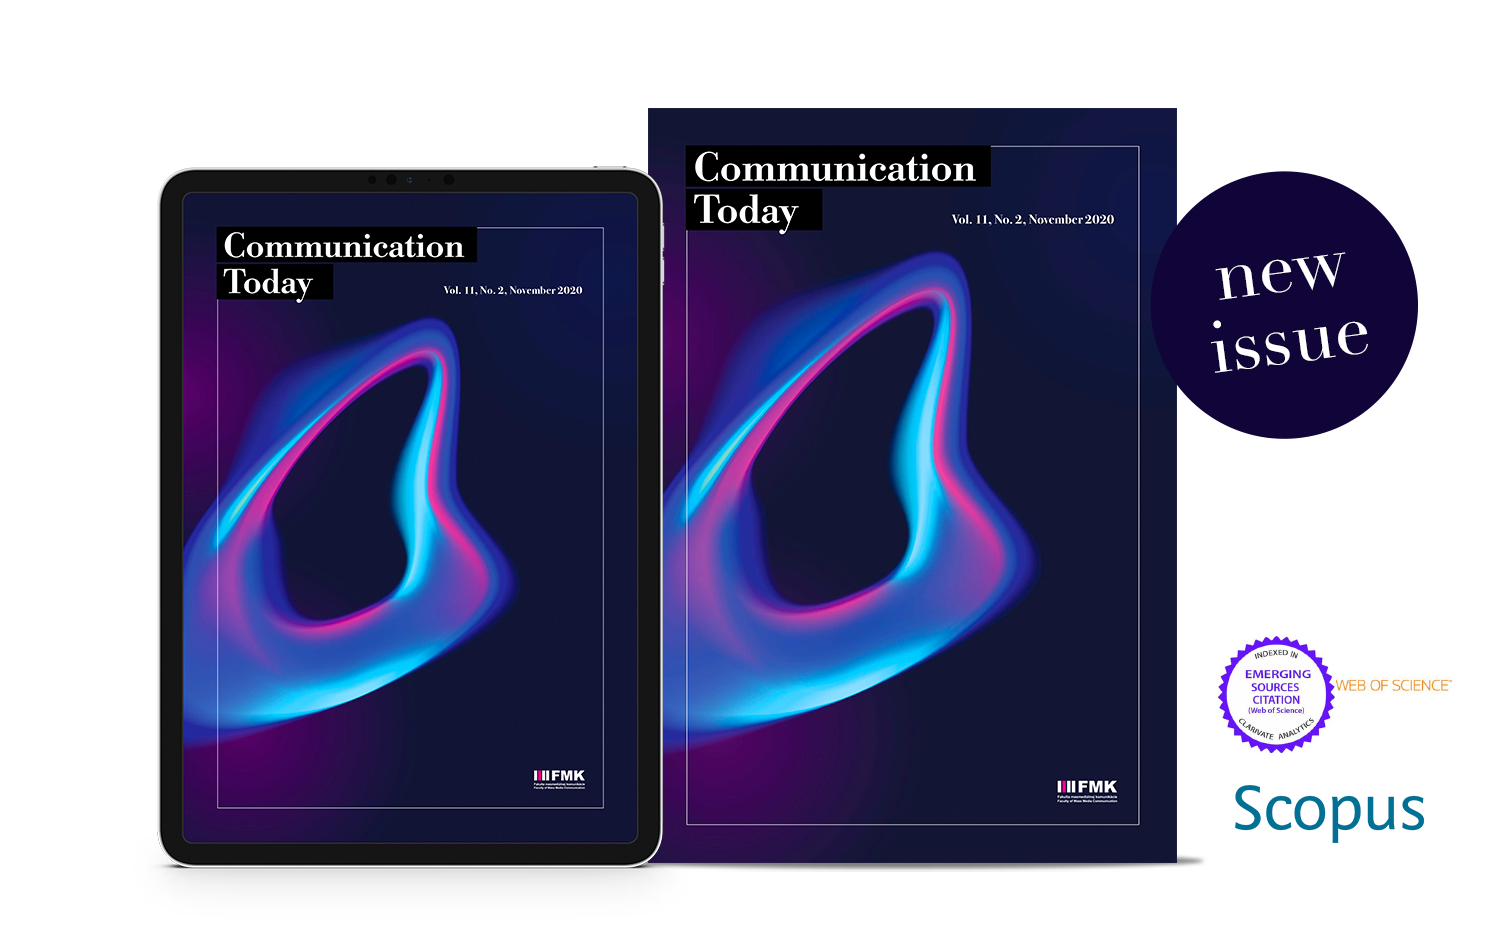 Communication Today vol. 11, no. 2 cover